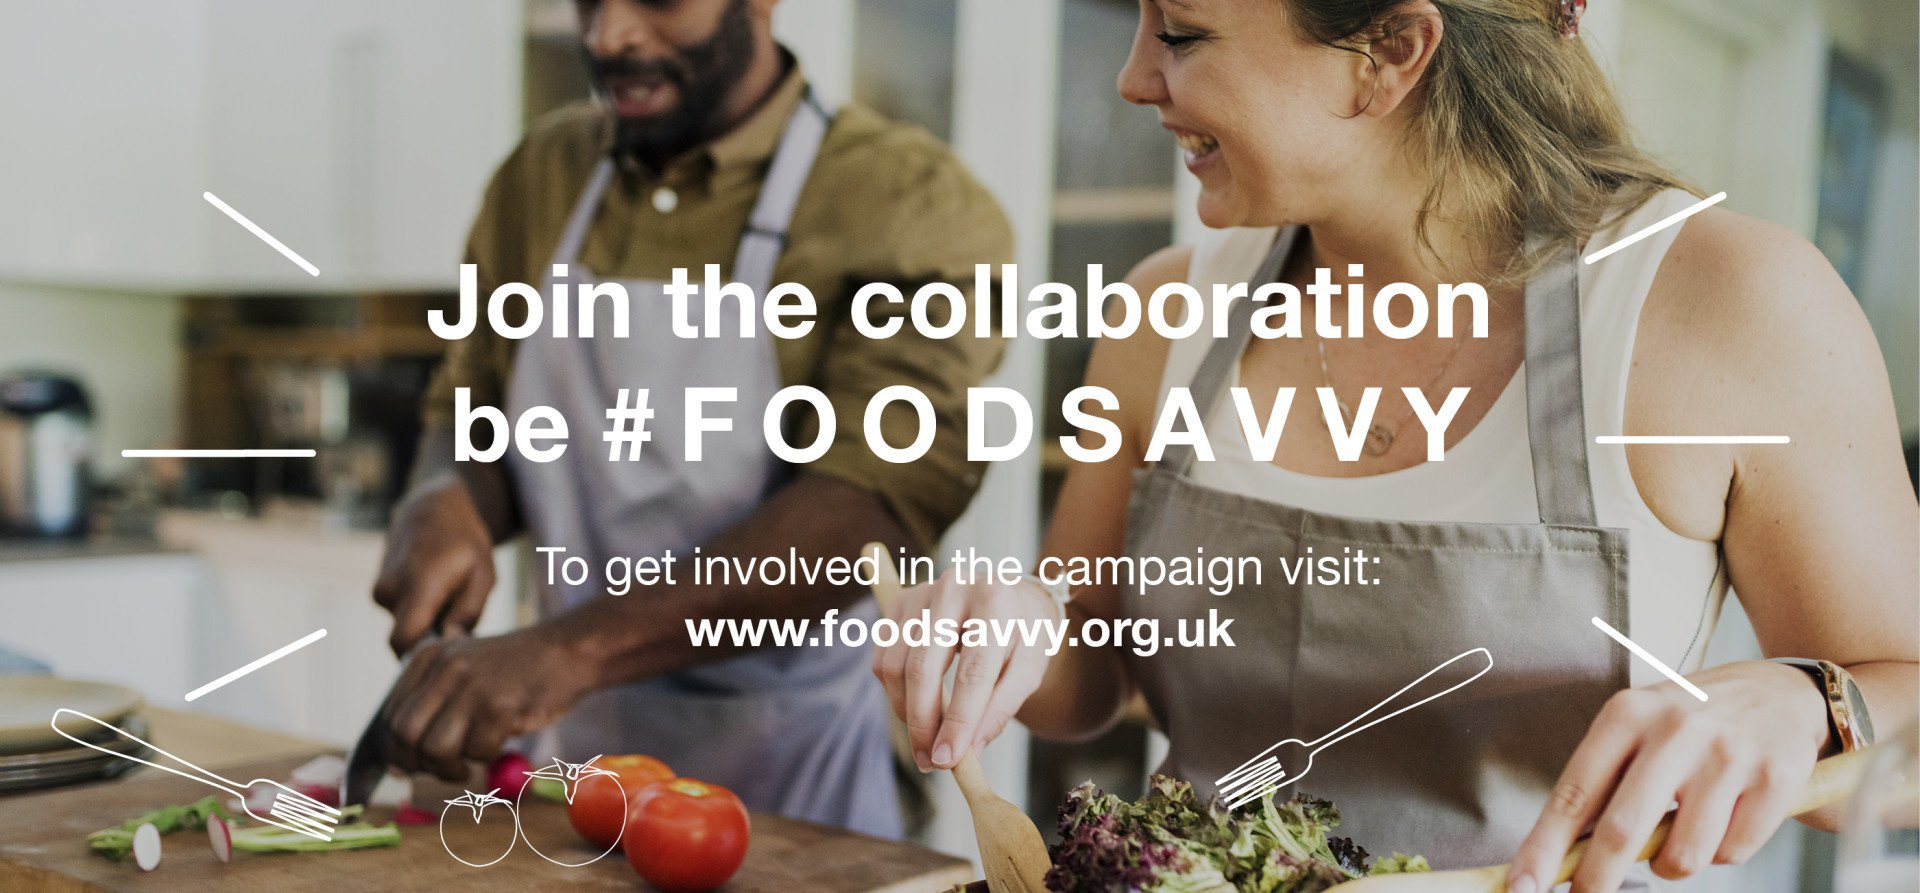 Join the collaboration, be Food Savvy